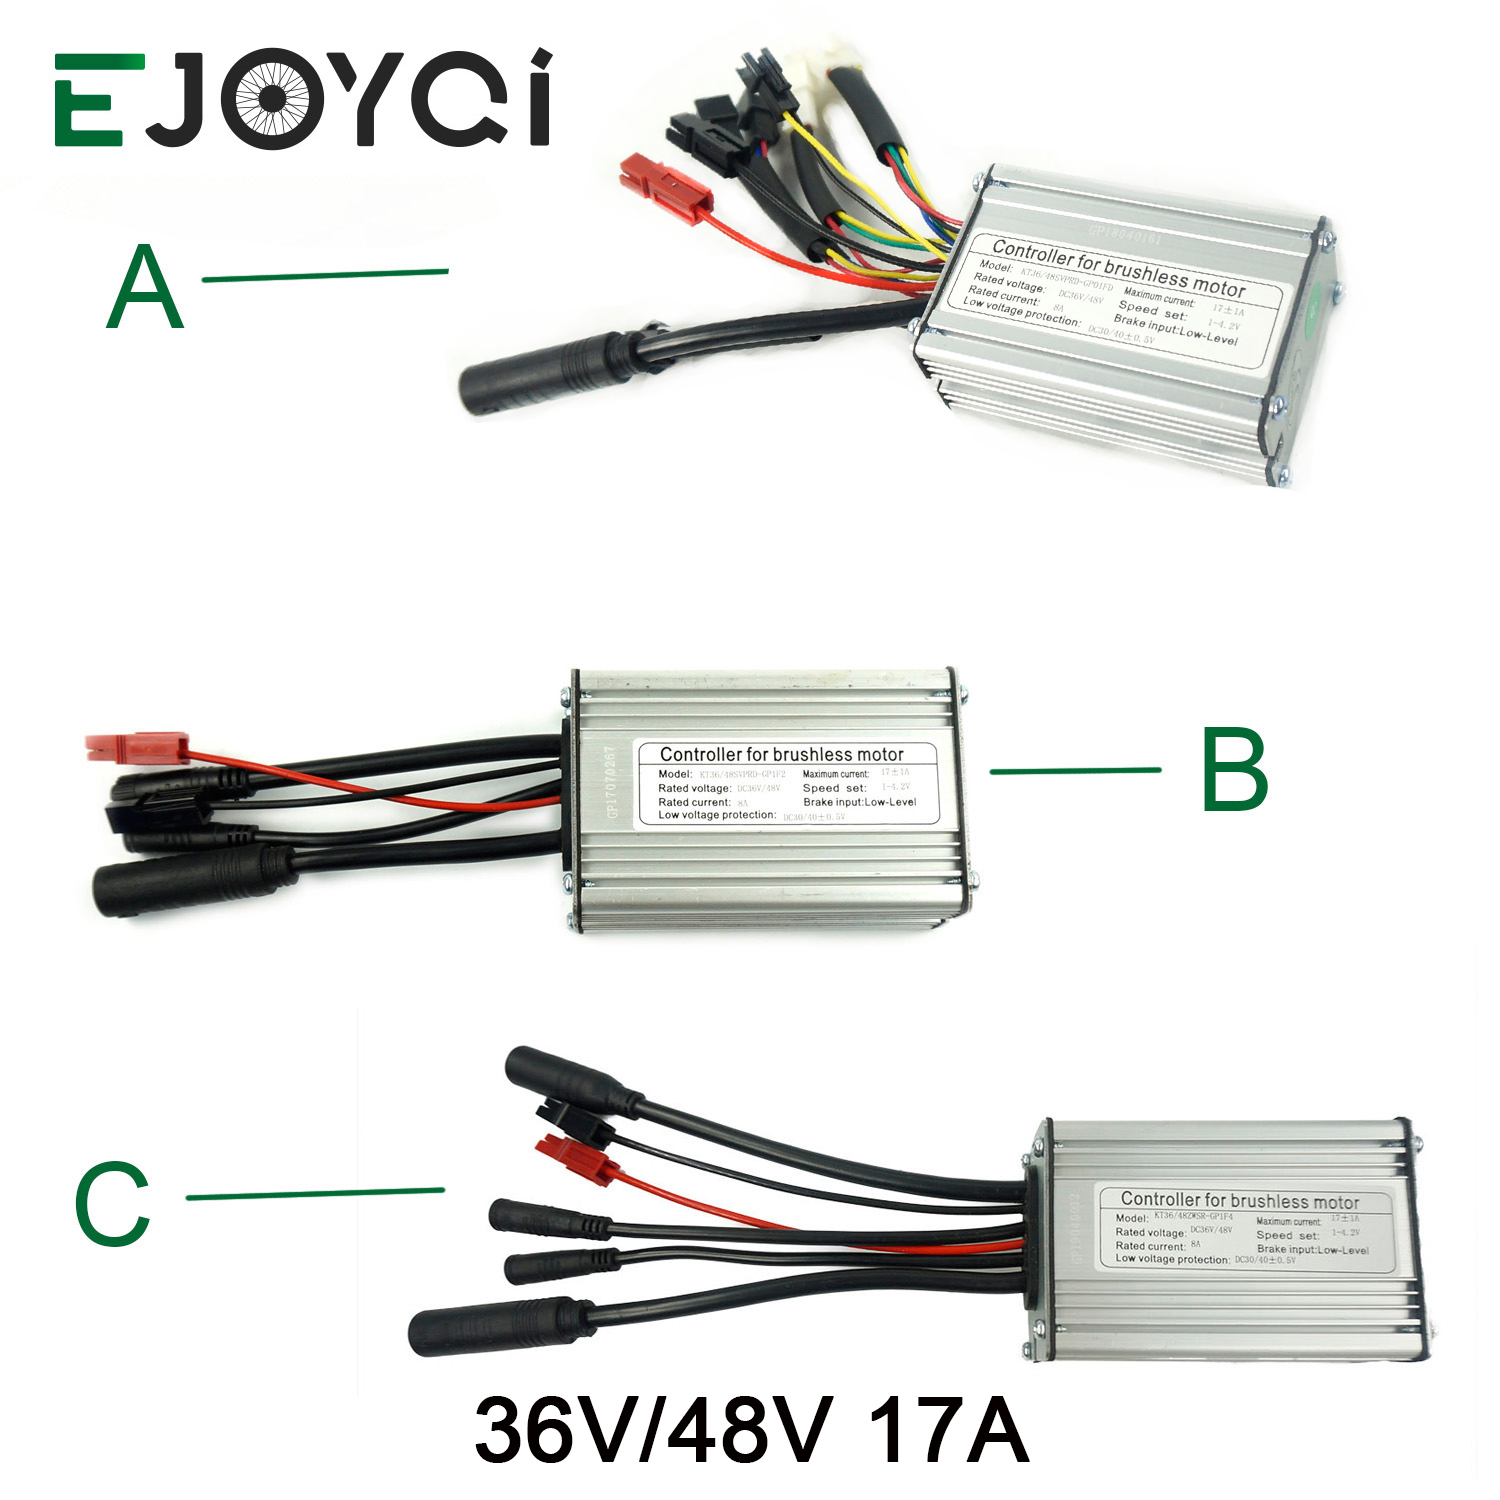 EJOYQI Electric Bike Controller KT 36V 48V 17A For Ebike Motor 350W Electric Bicycle Brushless Ebike Controller Waterproof